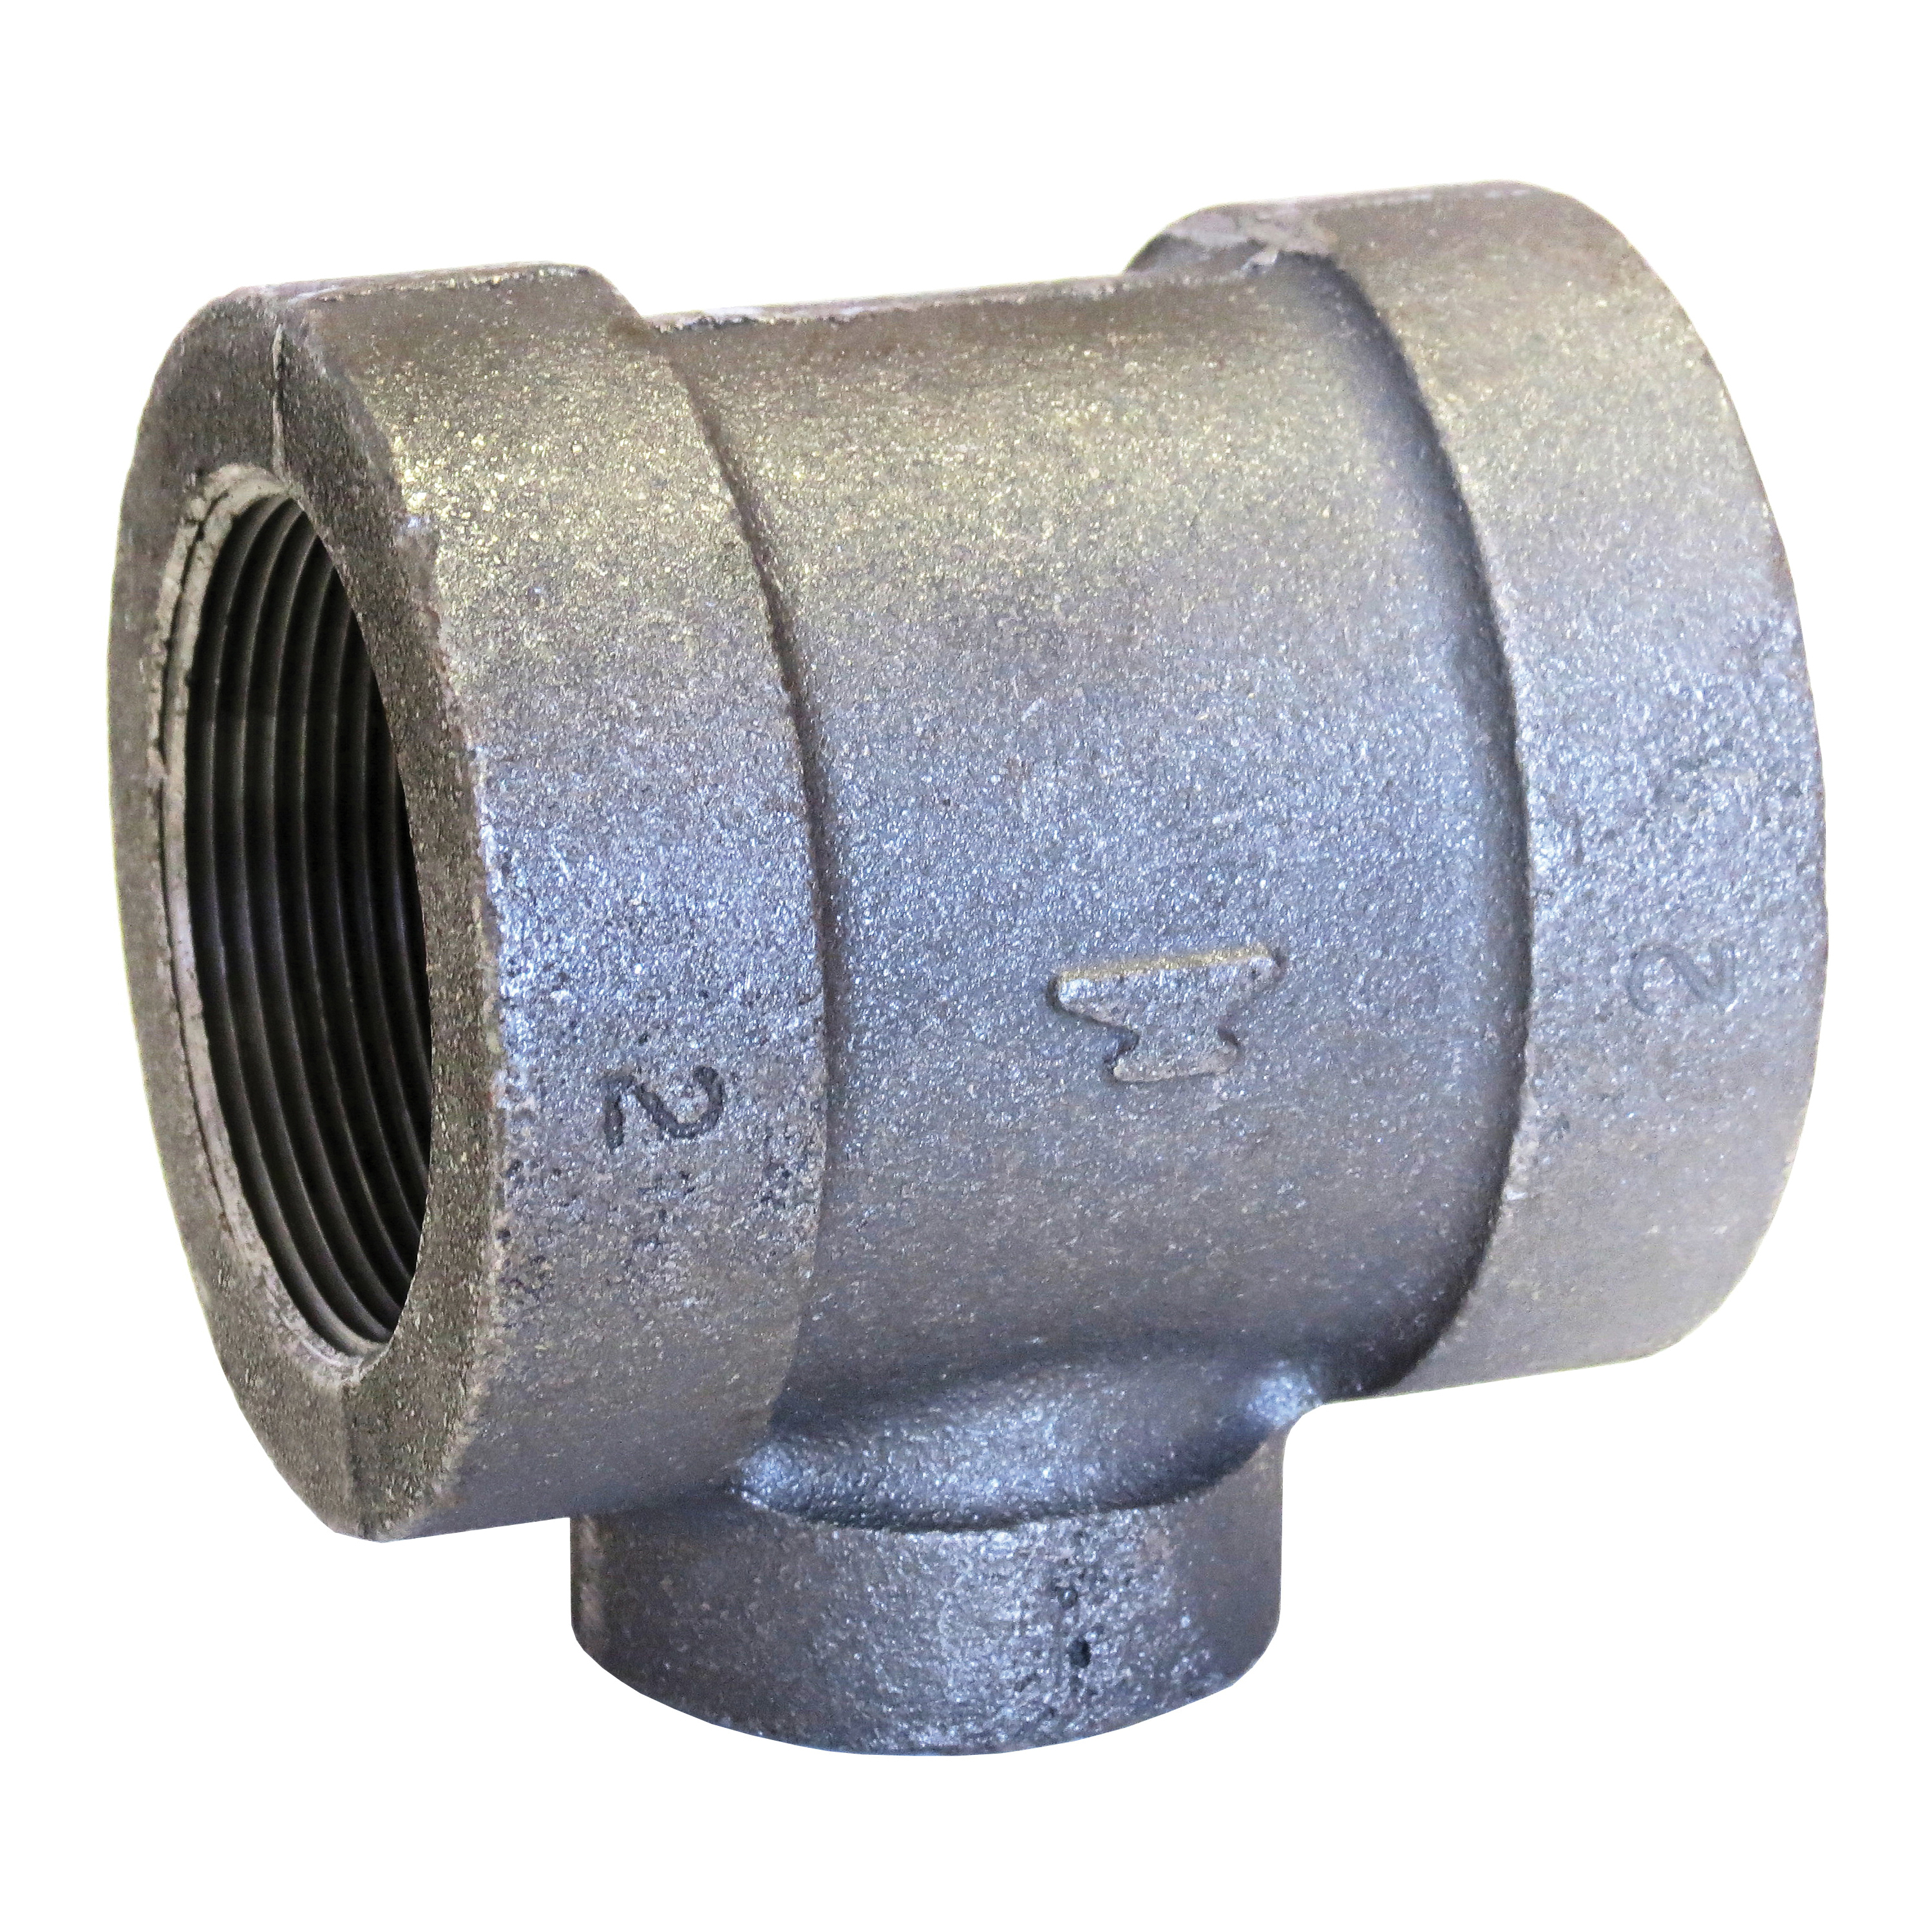 Anvil® 0311525604 FIG 1164R Pipe Reducing Tee, 2 x 2 x 1 in, FNPT, 300 lb, Malleable Iron, Galvanized, Domestic